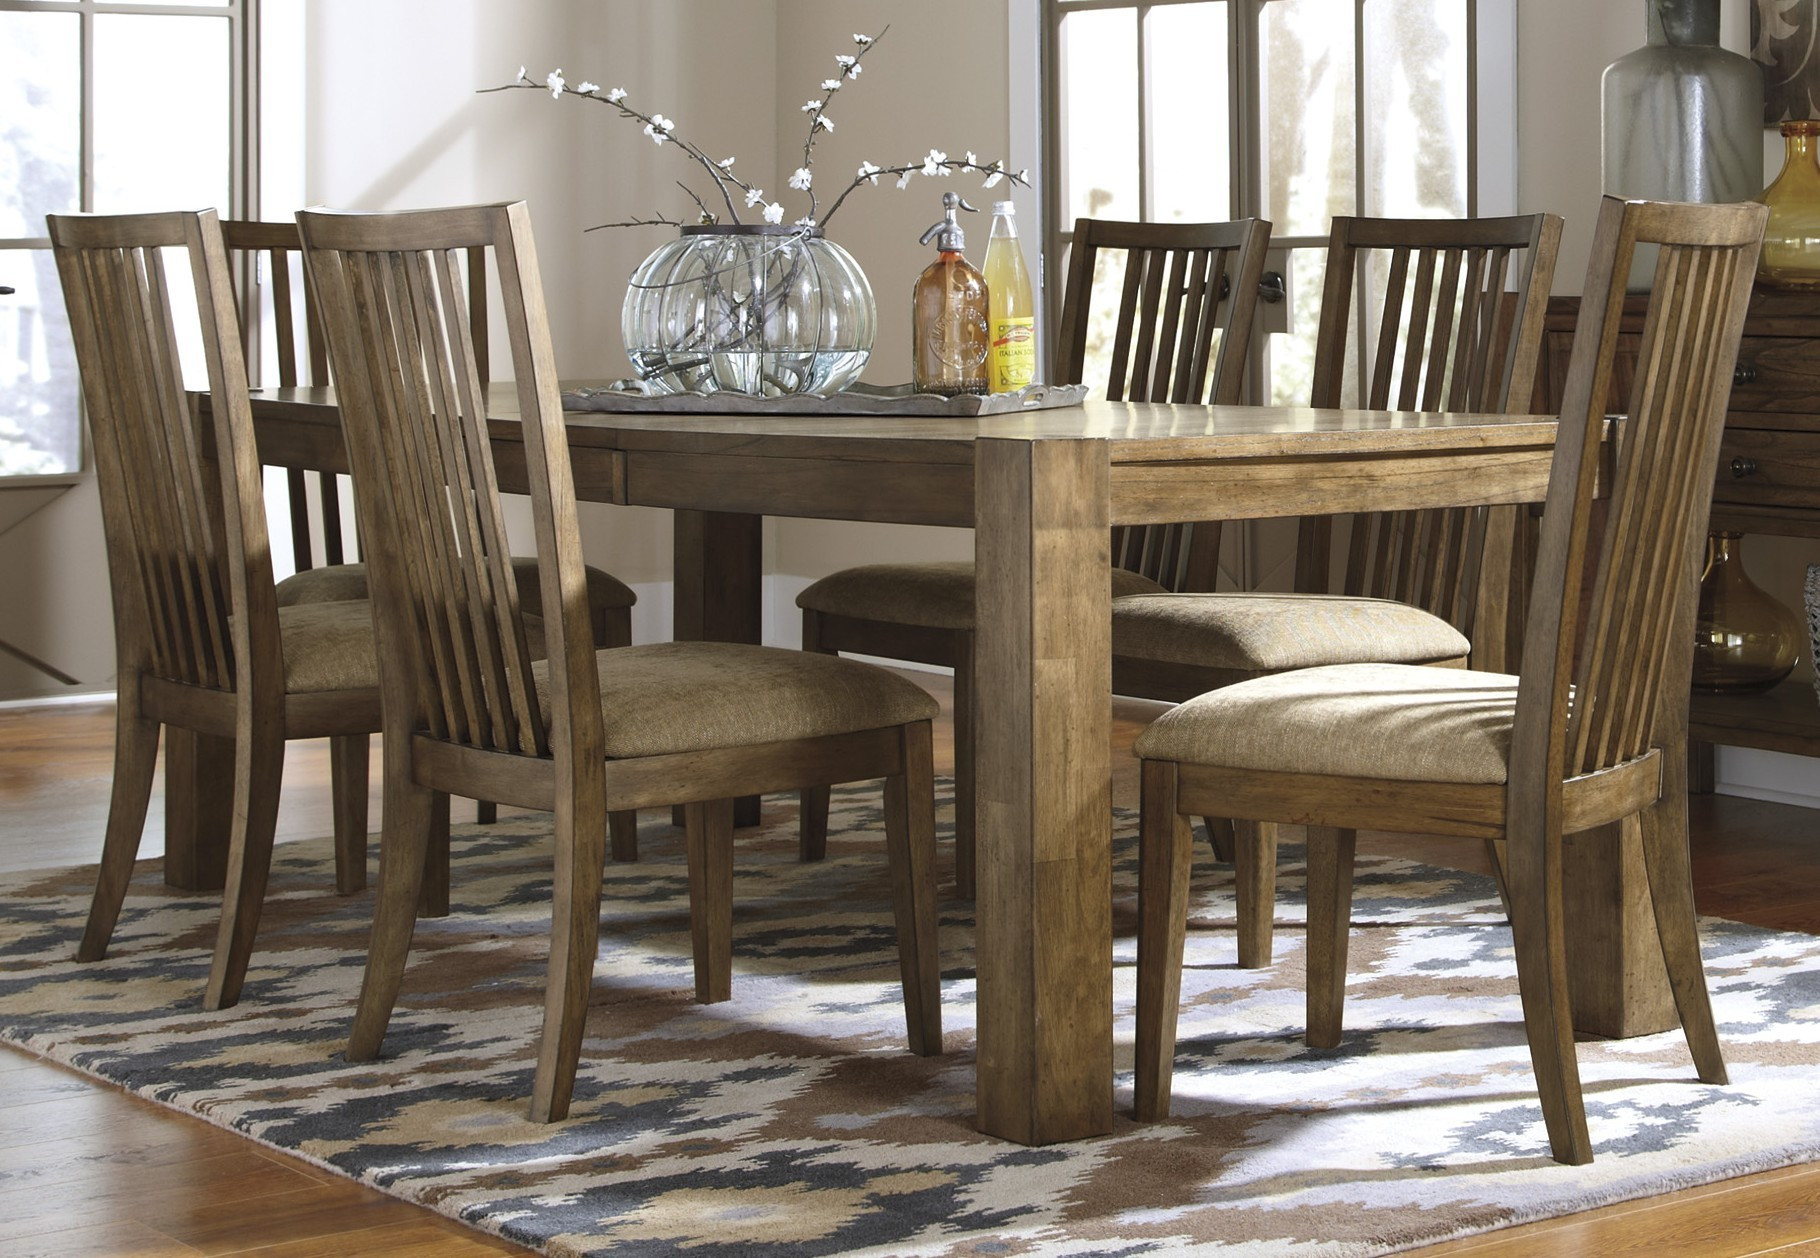 Best ideas about Ashley Furniture Dining Table . Save or Pin 47 Ashley Furniture Dining Room Table Set Ashley Now.